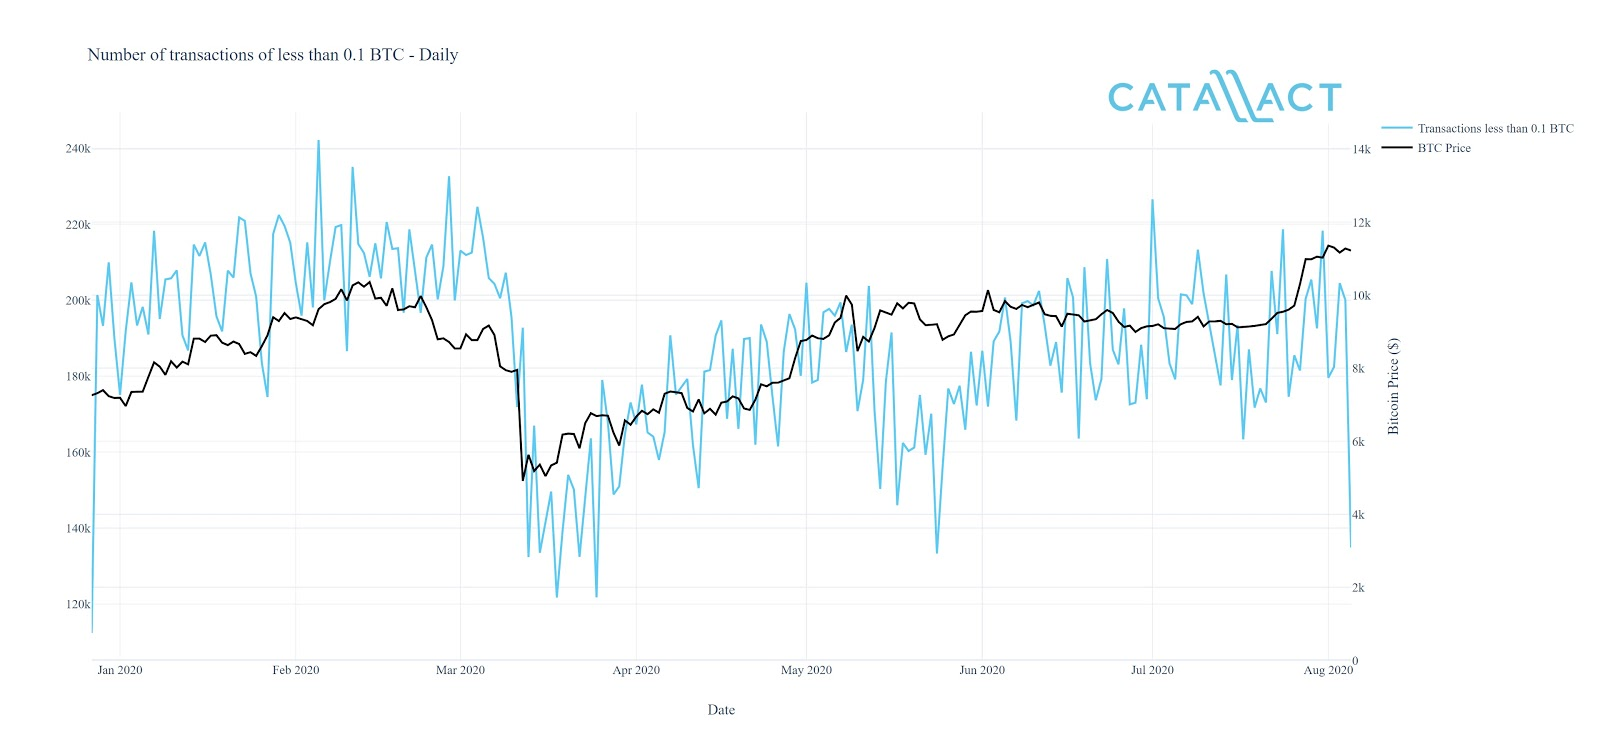 The number of daily small BTC transactions decreased and took a wait-and-see approach once the price of BTC hit $10,000 in May